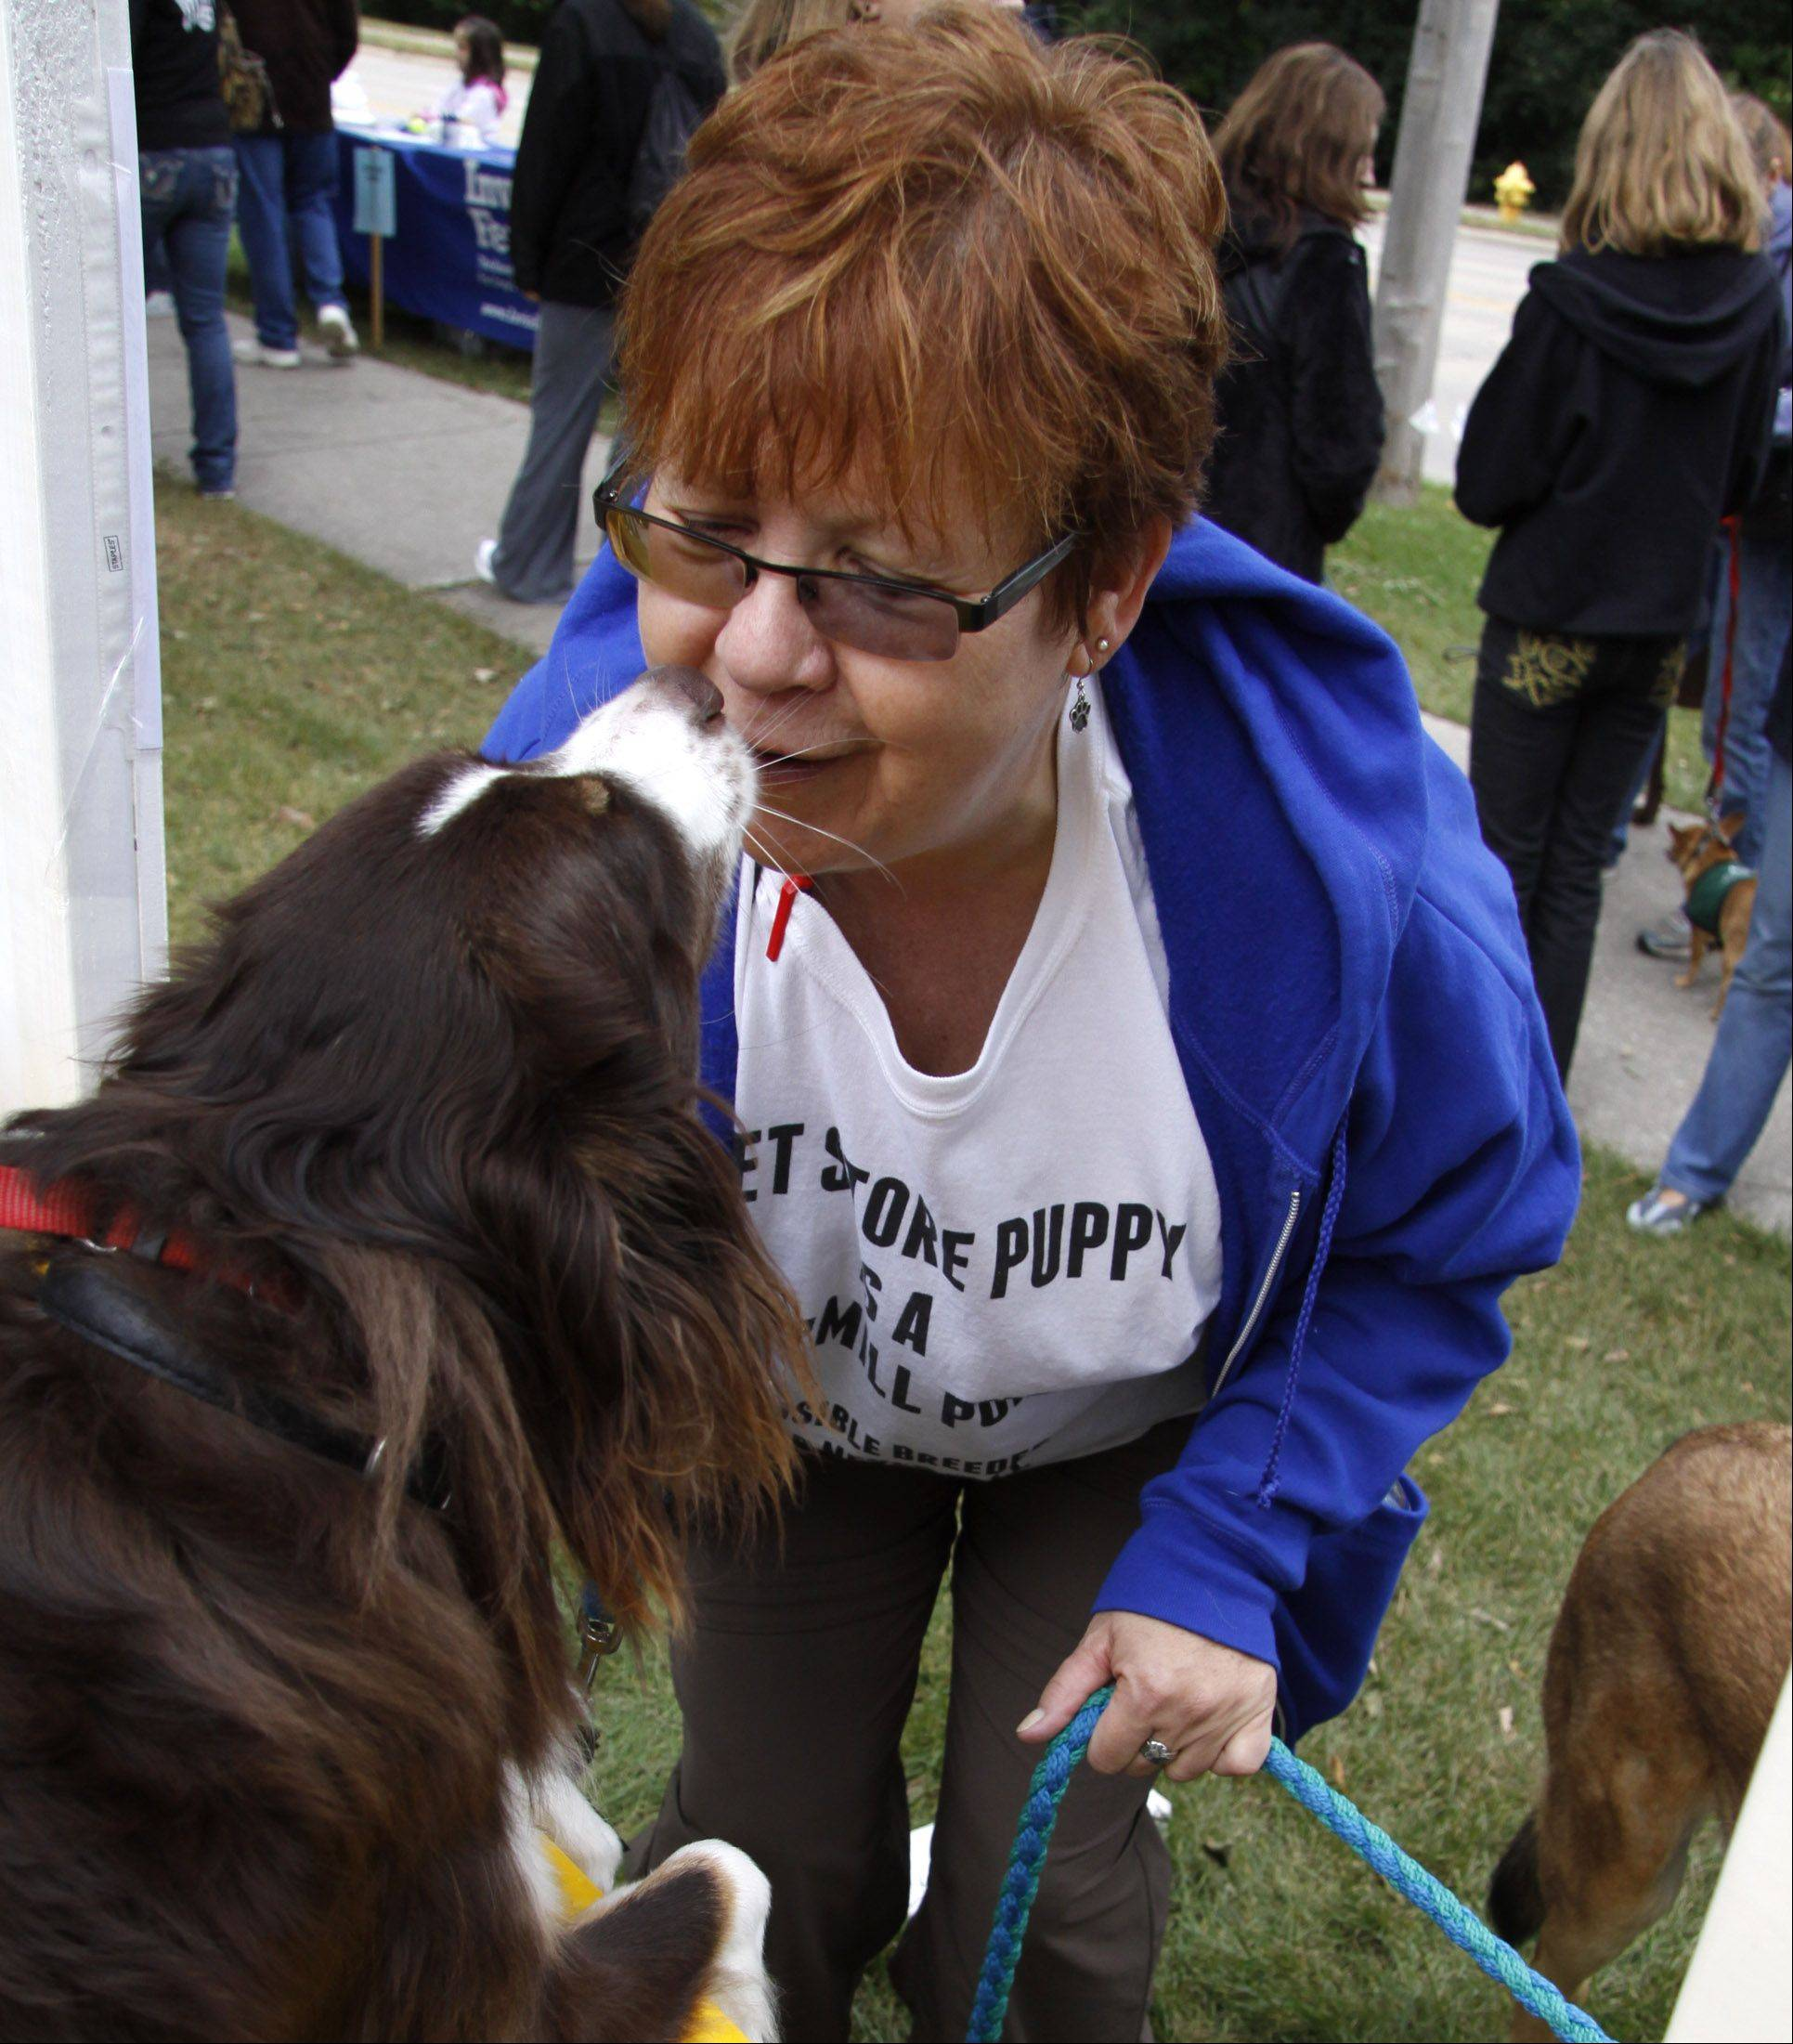 Dog lovers can come out for a walk with their pet Sunday, Sept. 25 from 10 a.m. to 2 p.m. at the West Suburban Humane Society's 18th annual Barkapalooza fundraiser in Lisle Community Park, 1825 Short St., Lisle.